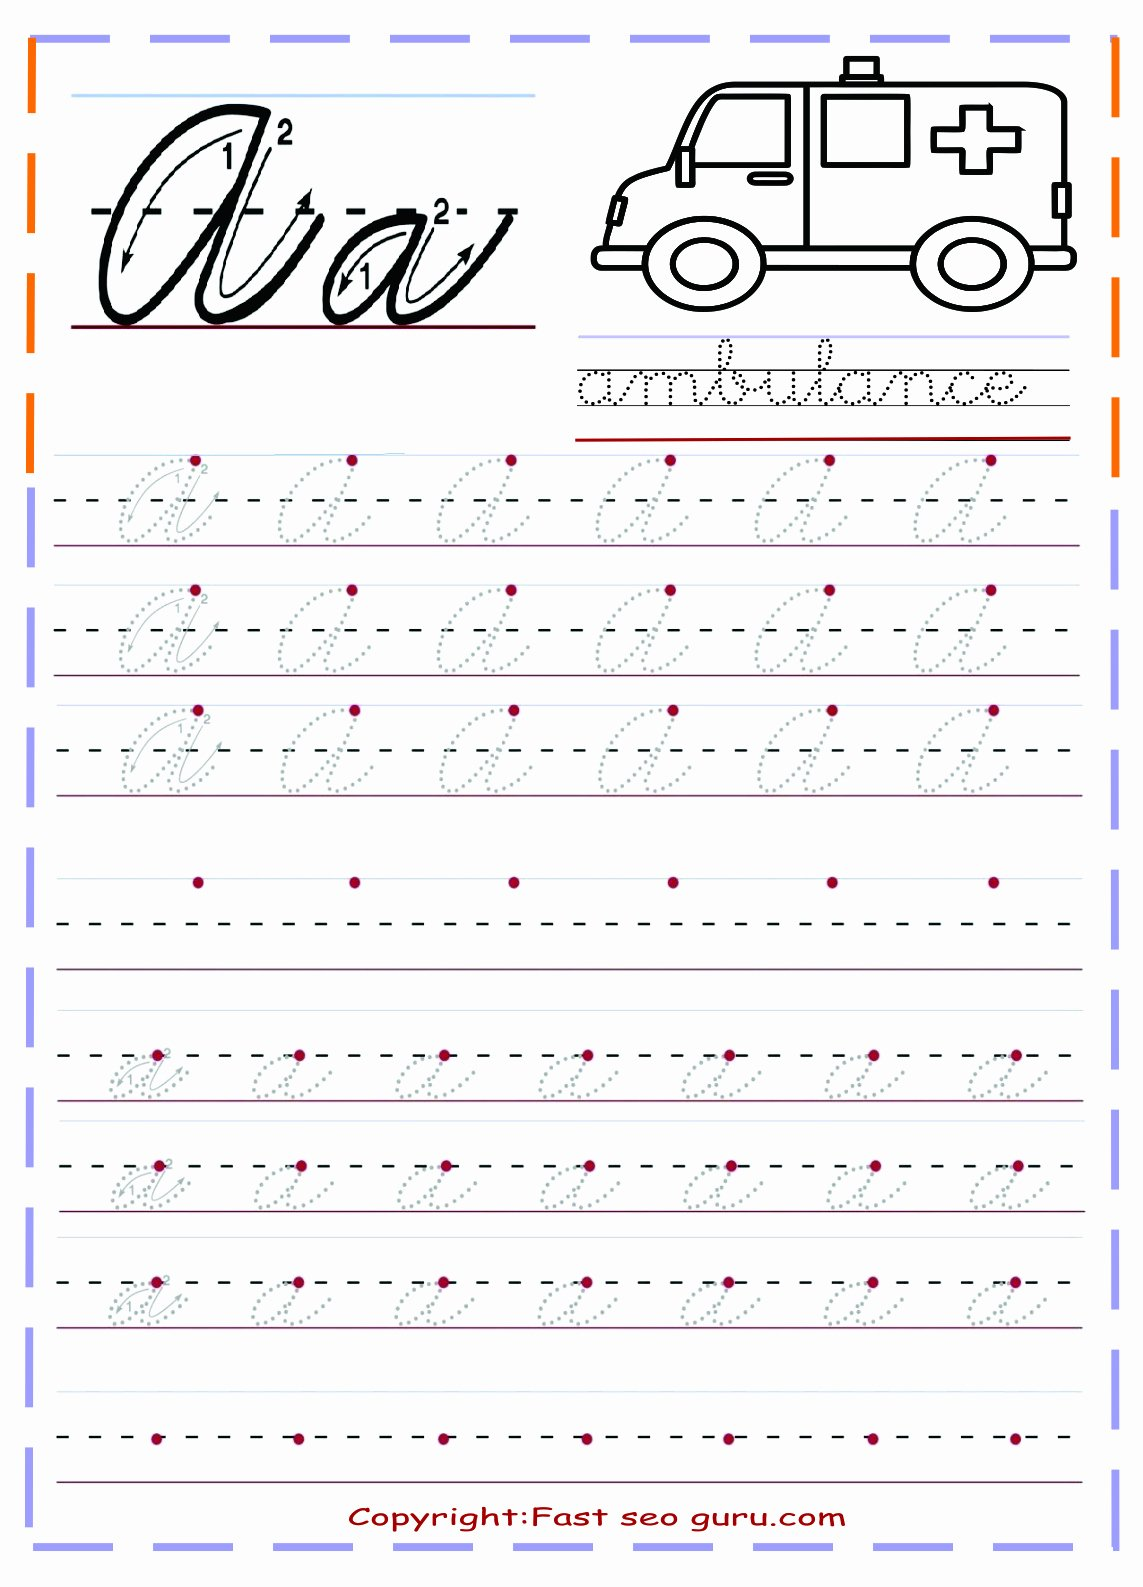 Cursive Writing Practice Sheets Lovely 1000 Ideas About Cursive Handwriting Practice On